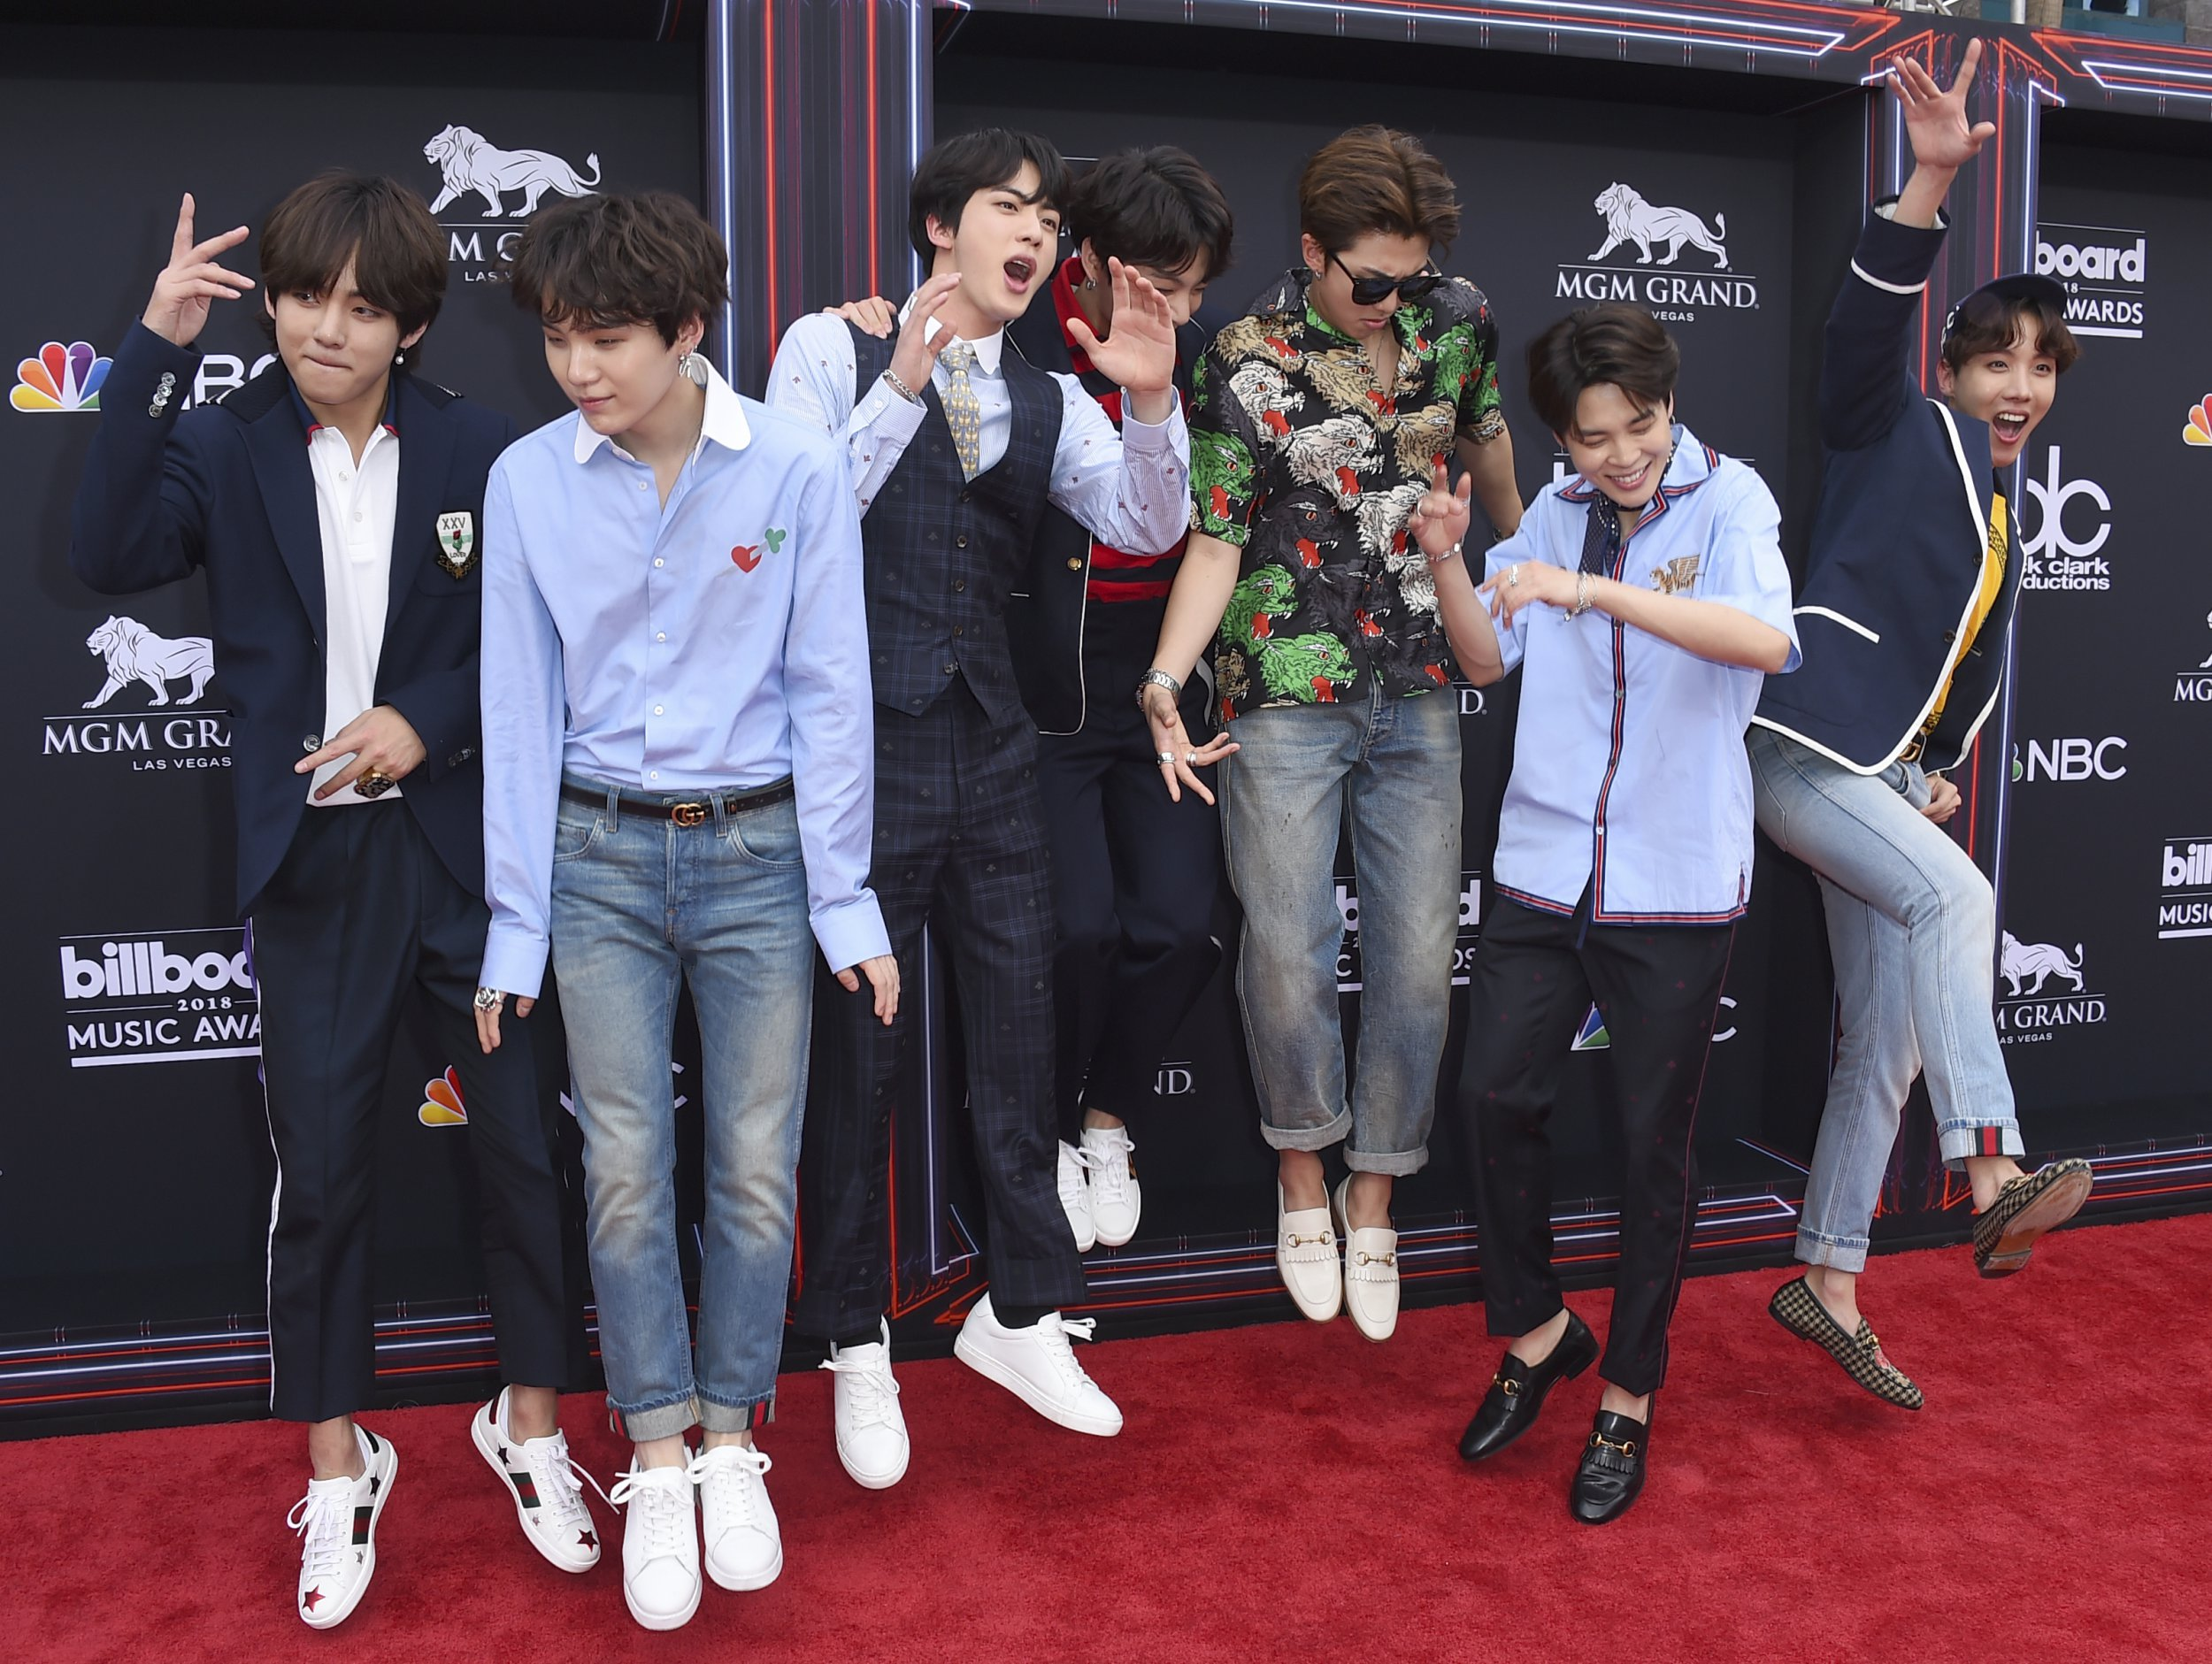 BTS arrives at the Billboard Music Awards at the MGM Grand Garden Arena on Sunday, May 20, 2018, in Las Vegas. (Photo by Jordan Strauss/Invision/AP)